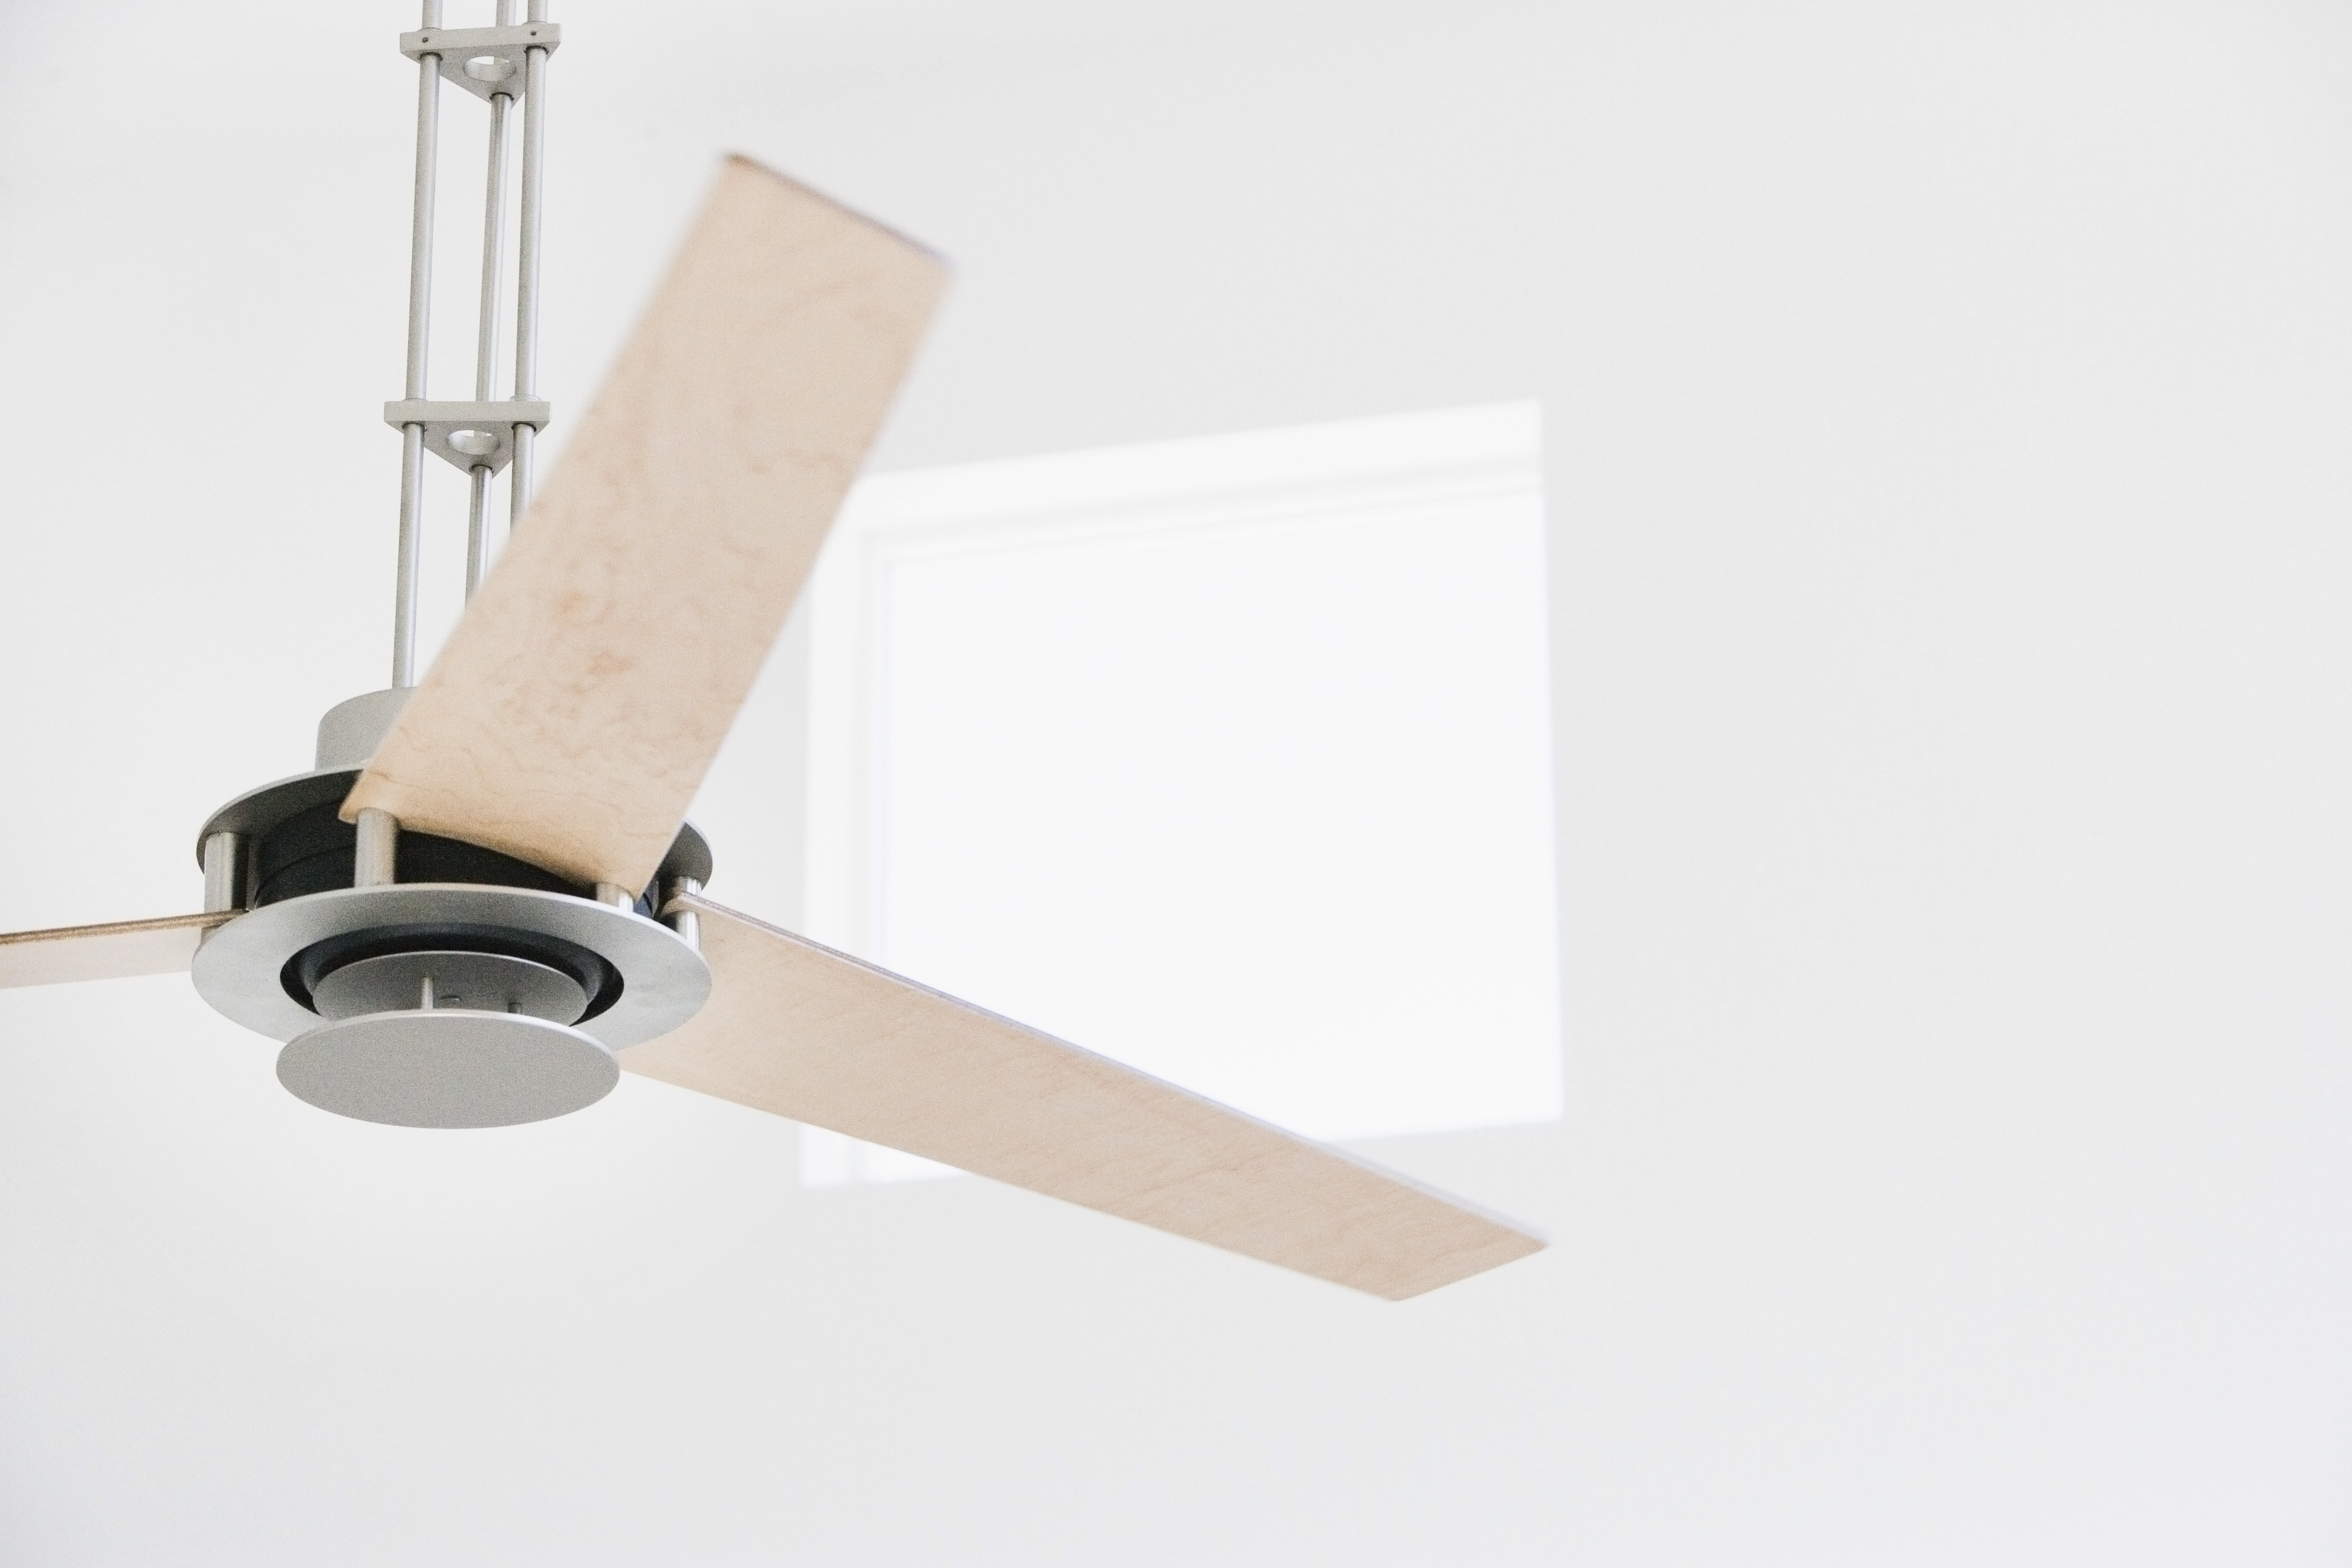 The Direction & Speed of Ceiling Fan Rotation in the Winter & Summer ...